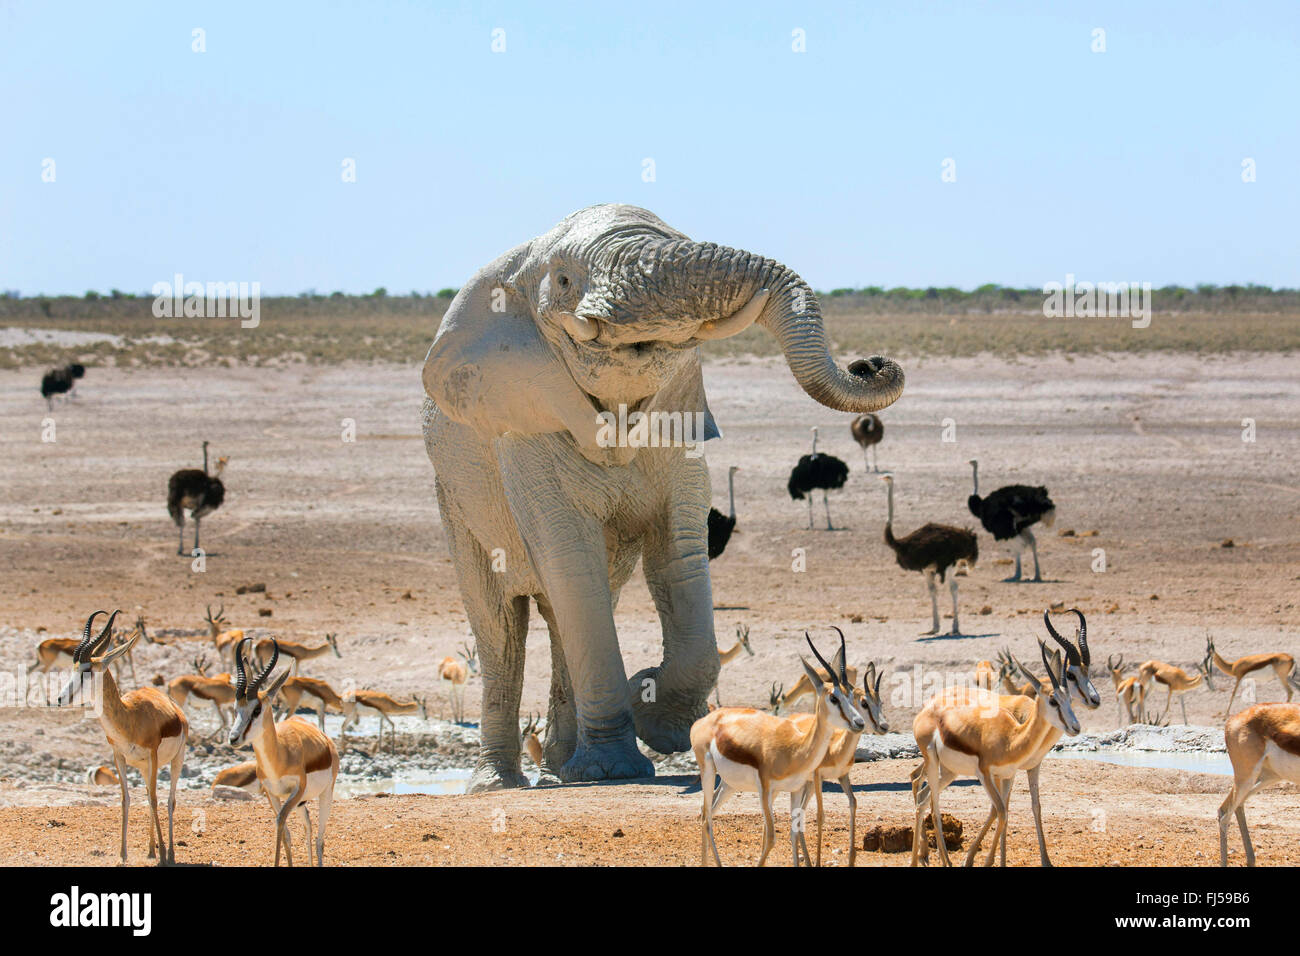 African elephant (Loxodonta africana), elefant after mud bath in a waterhole with impalas and ostriches, Namibia, Stock Photo